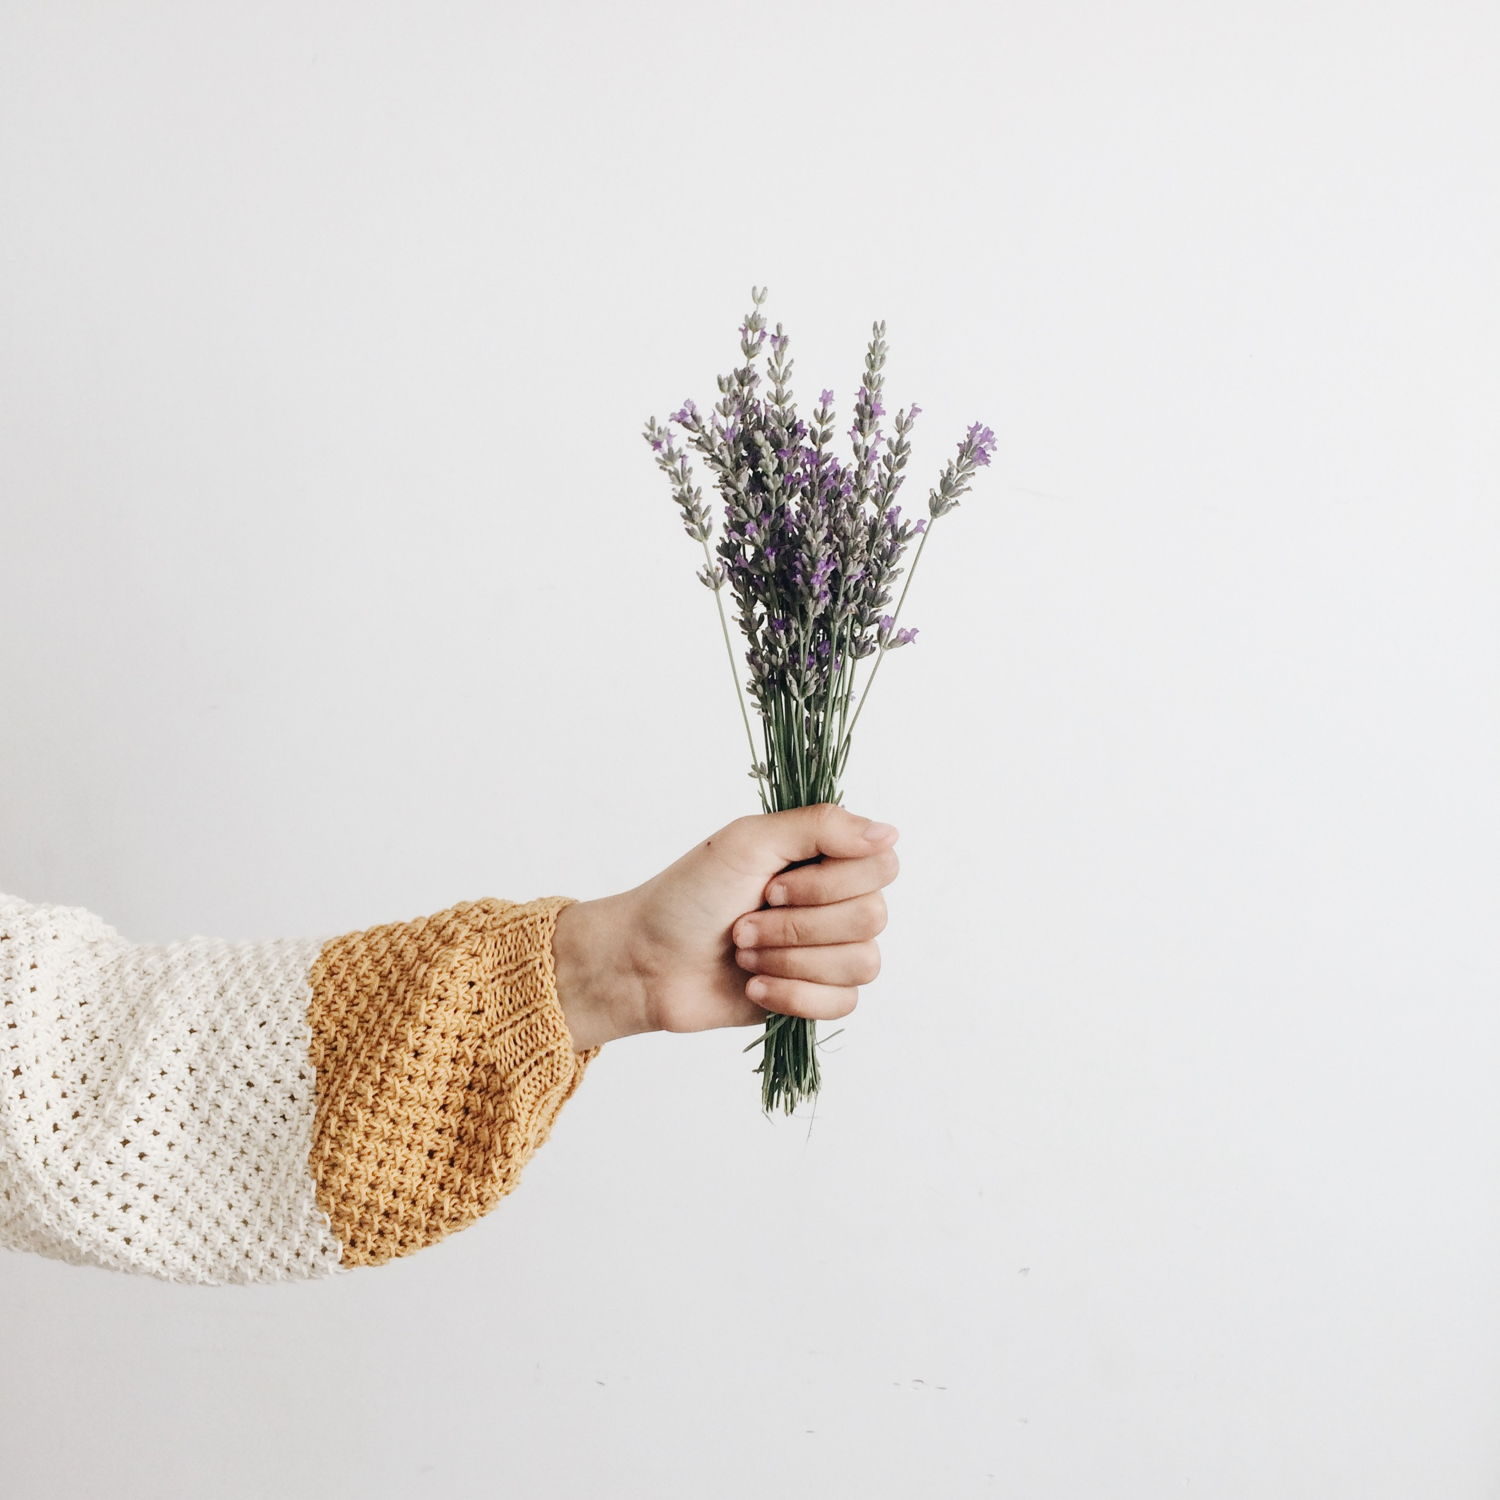 girl holding lavender bouquet